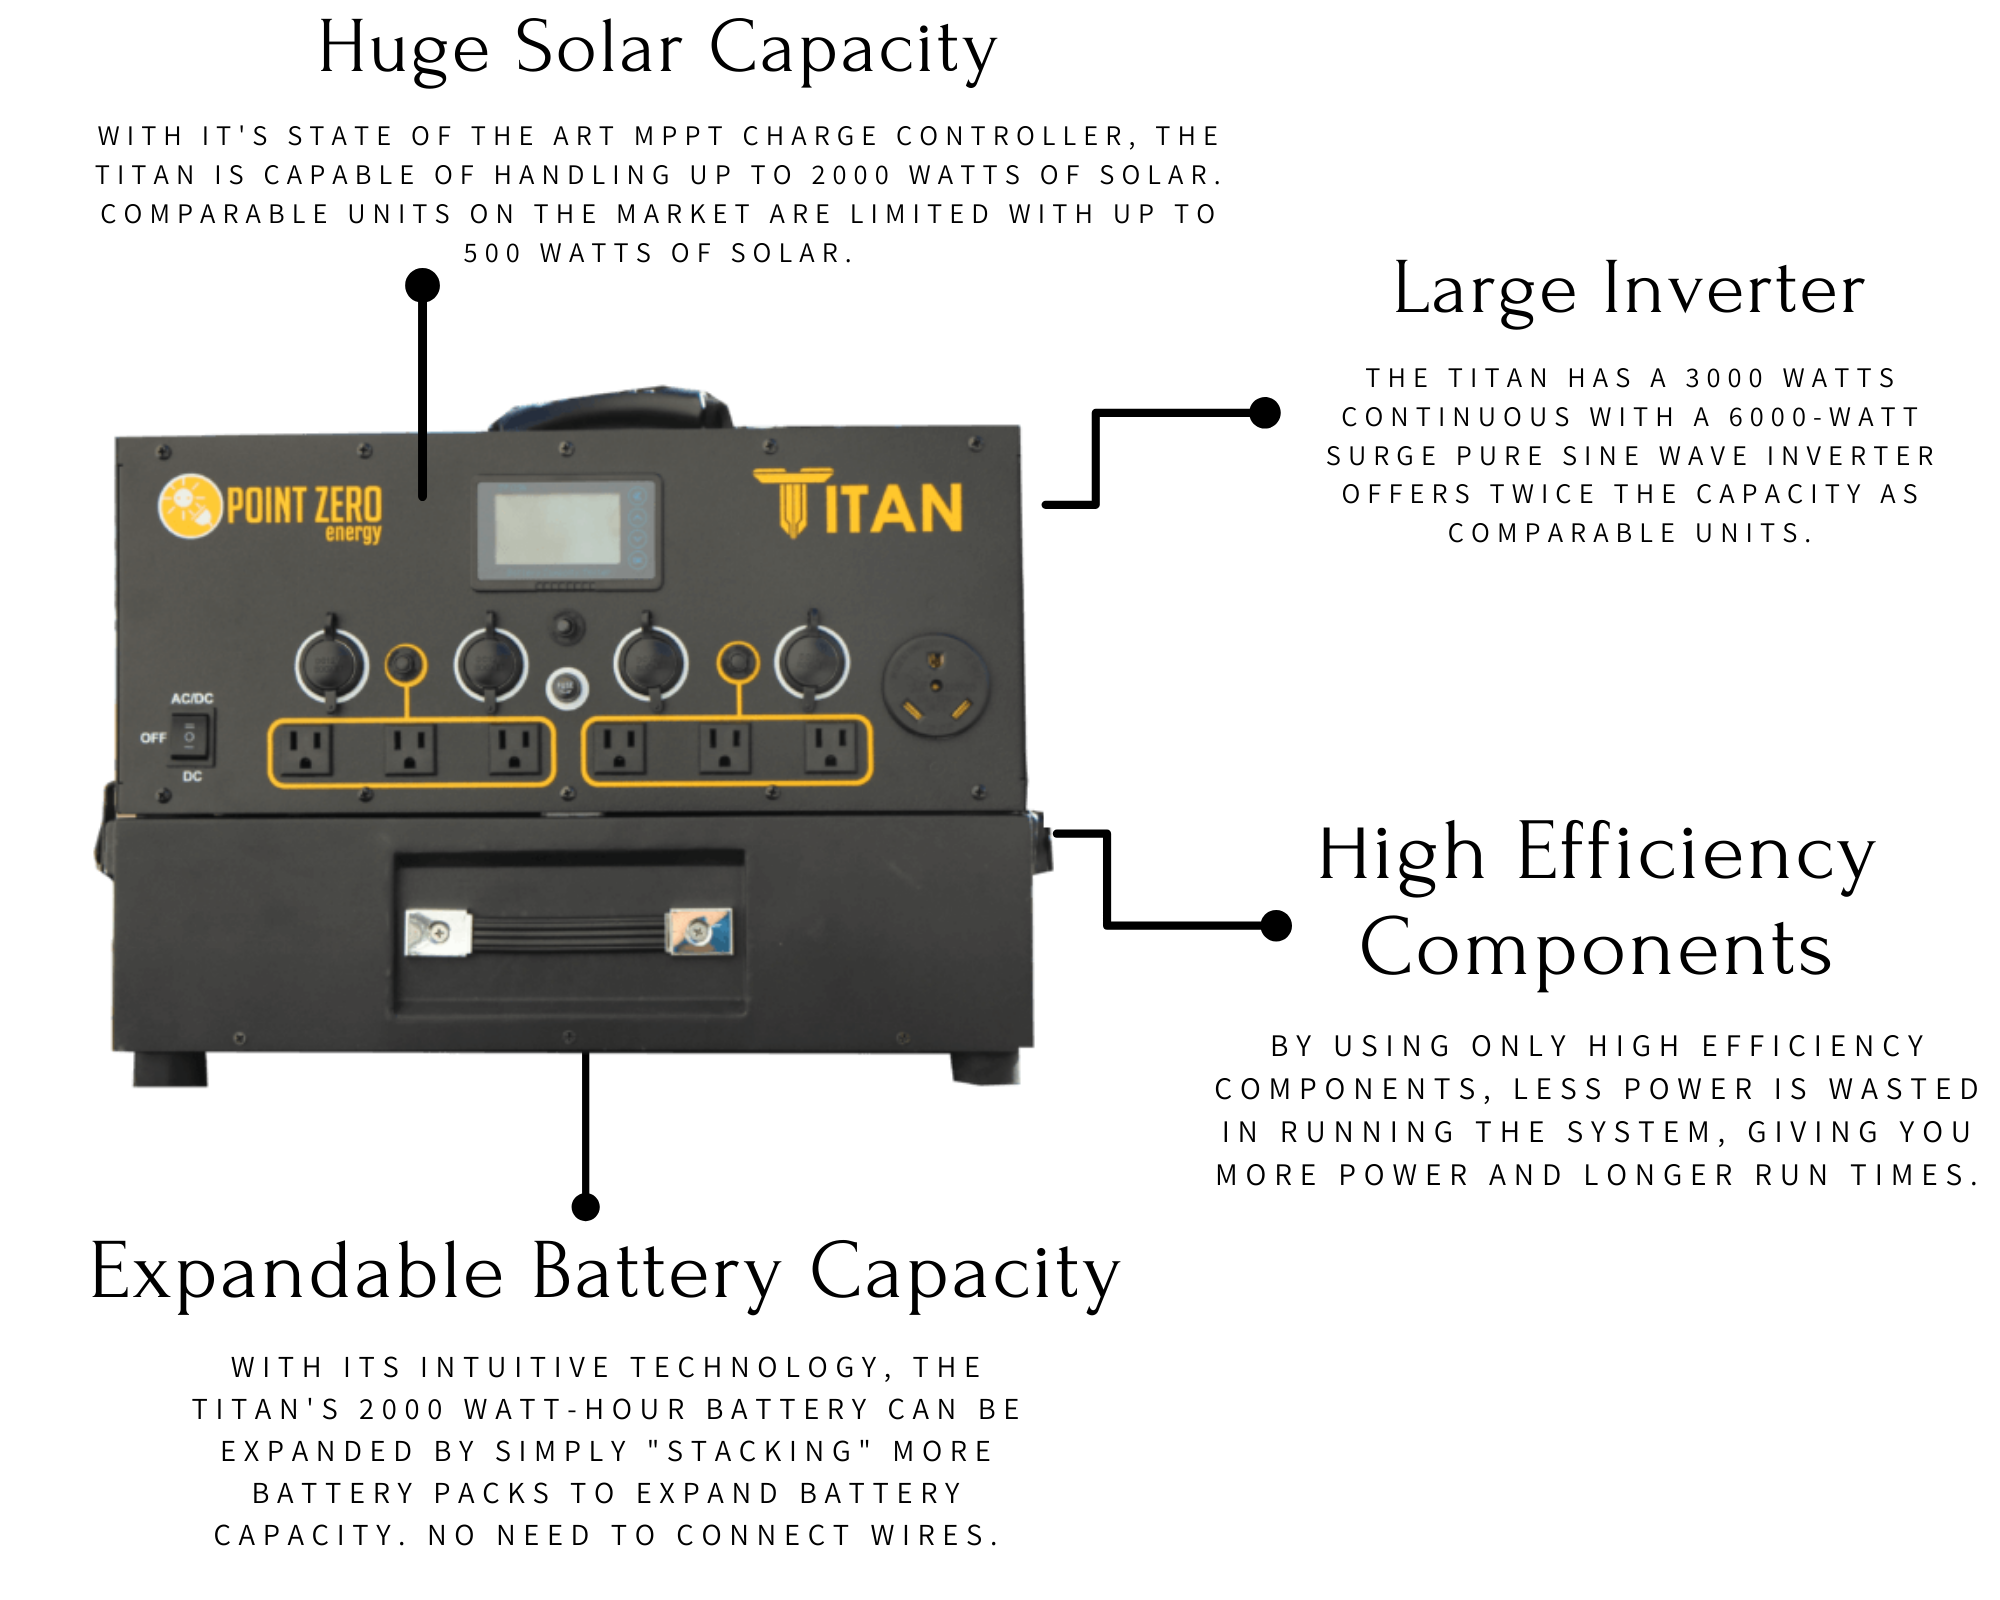 Picture of the Titan Solar Generator Features such as Huge Solar Capacity, Large Inverter, High Efficiency Components, and Expandable Battery Capacity- Point Zero Energy Generators